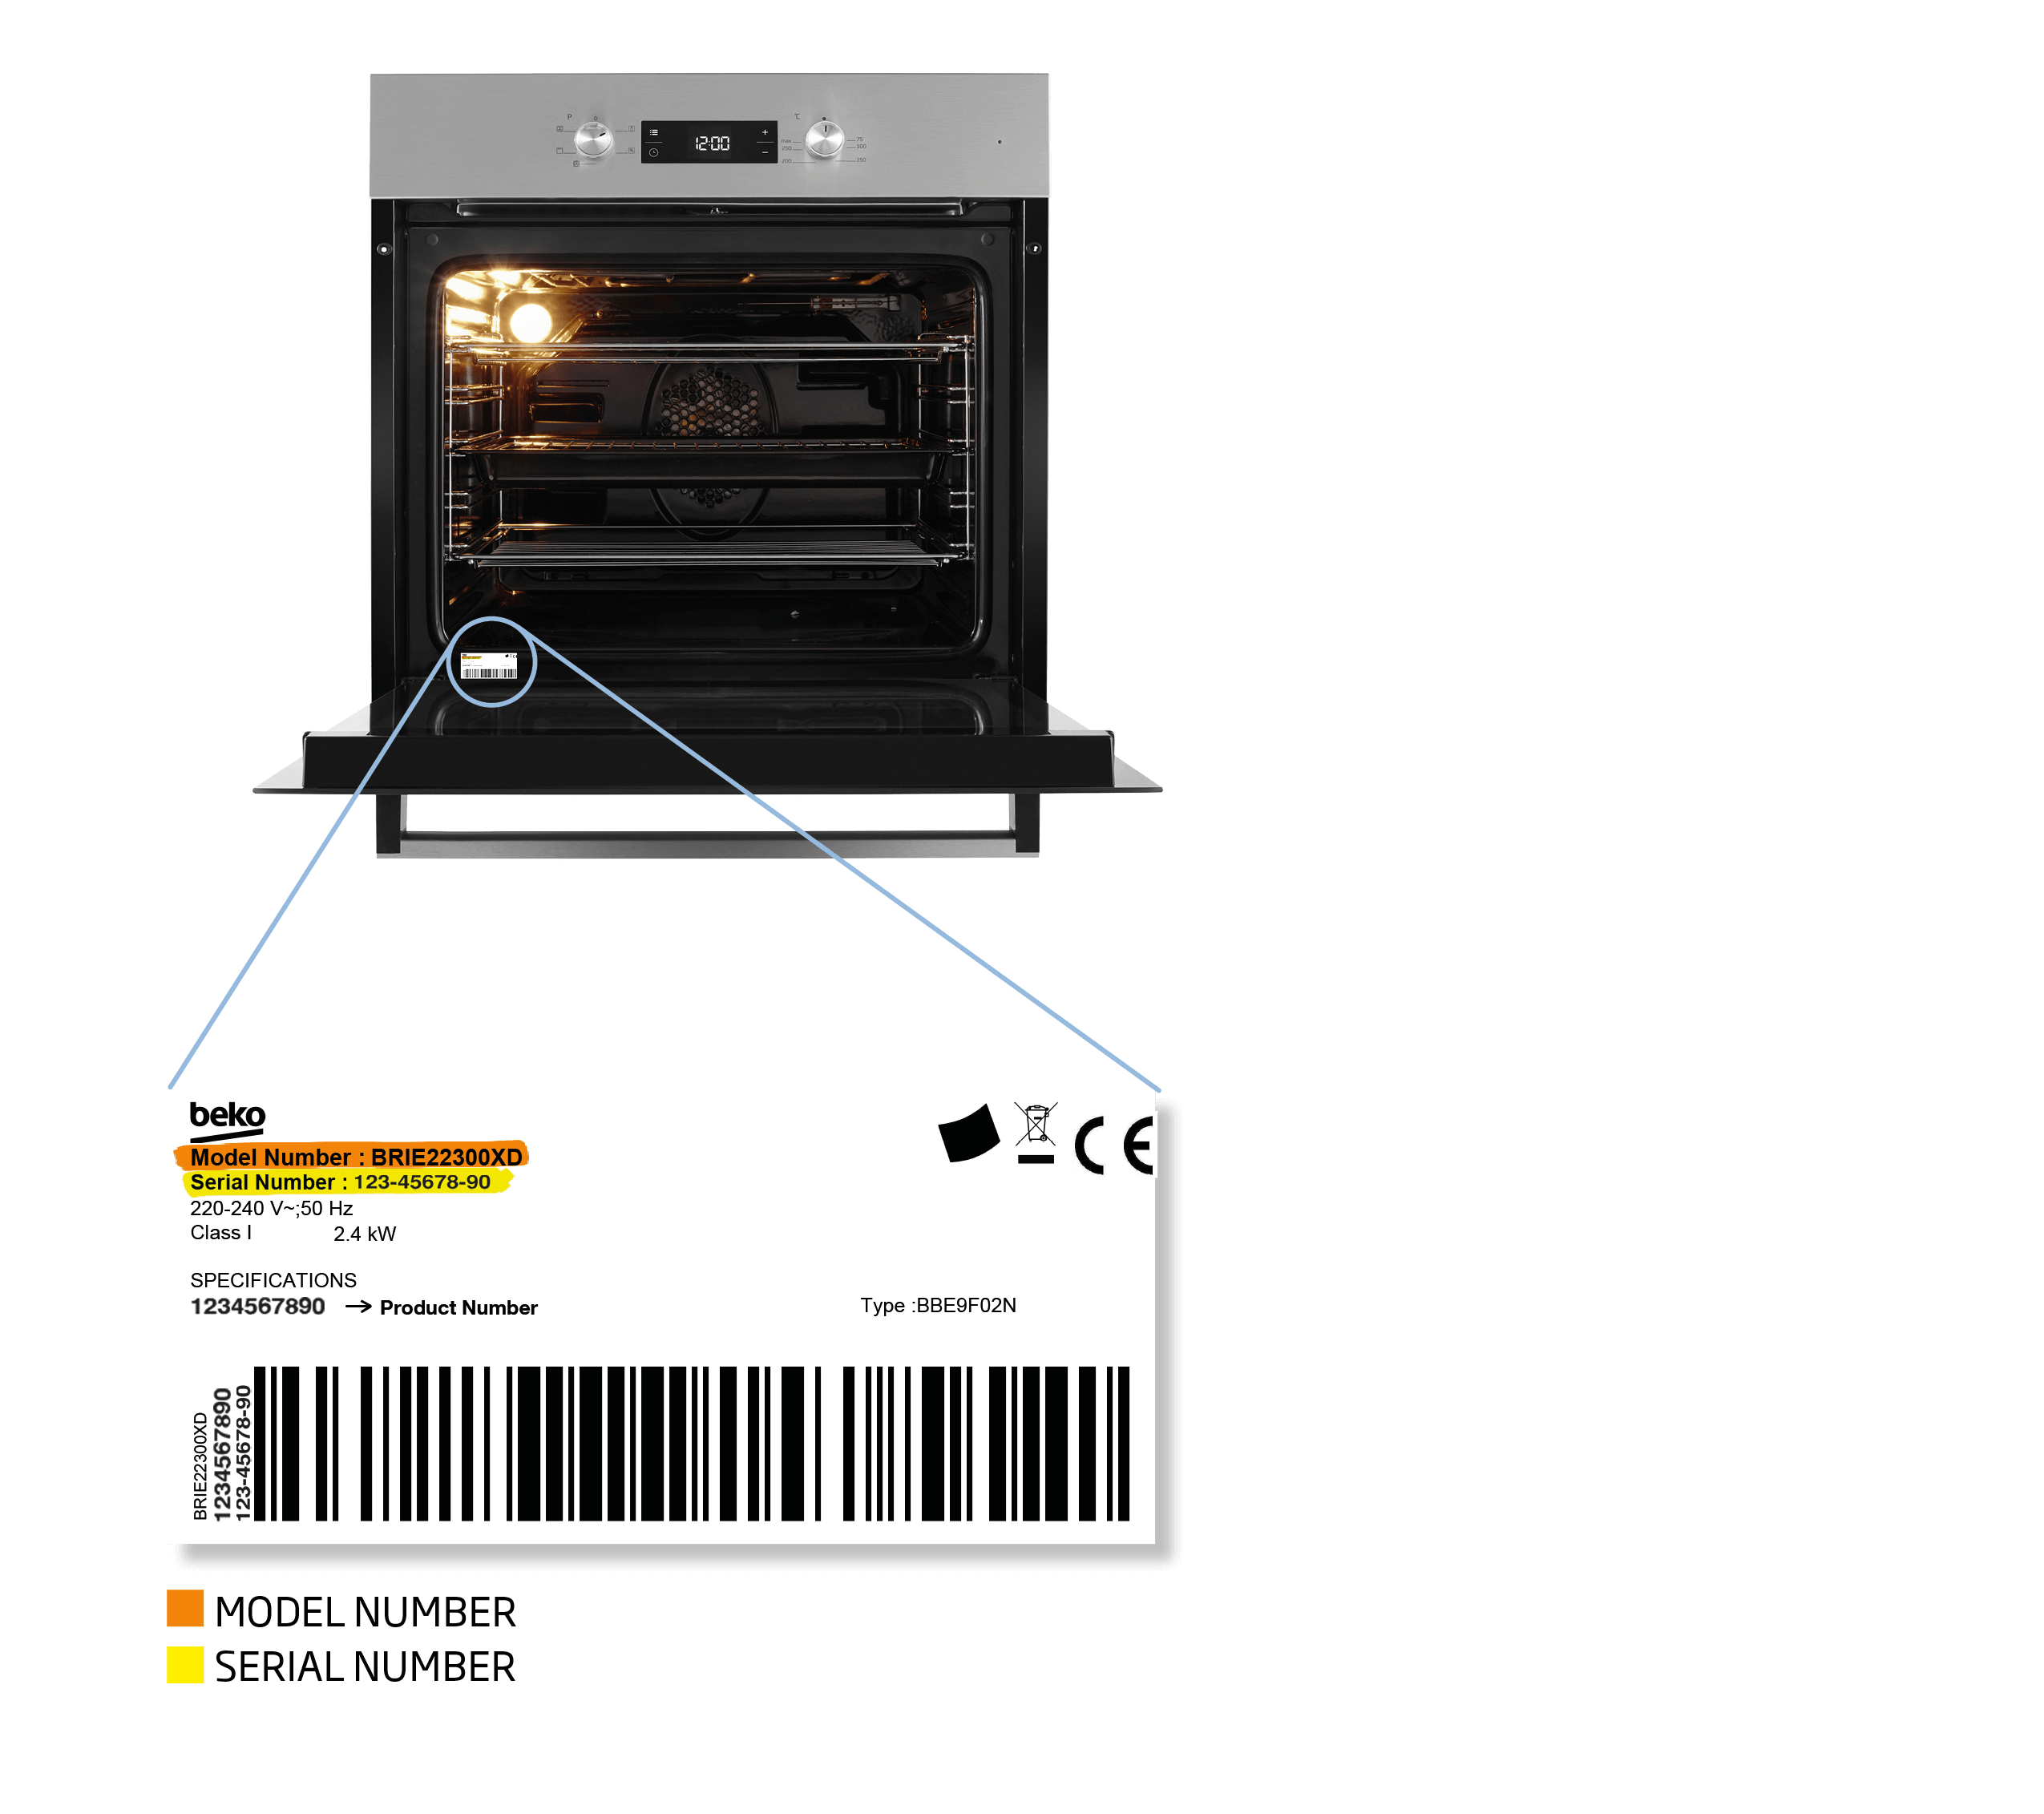 built-in ovens model number